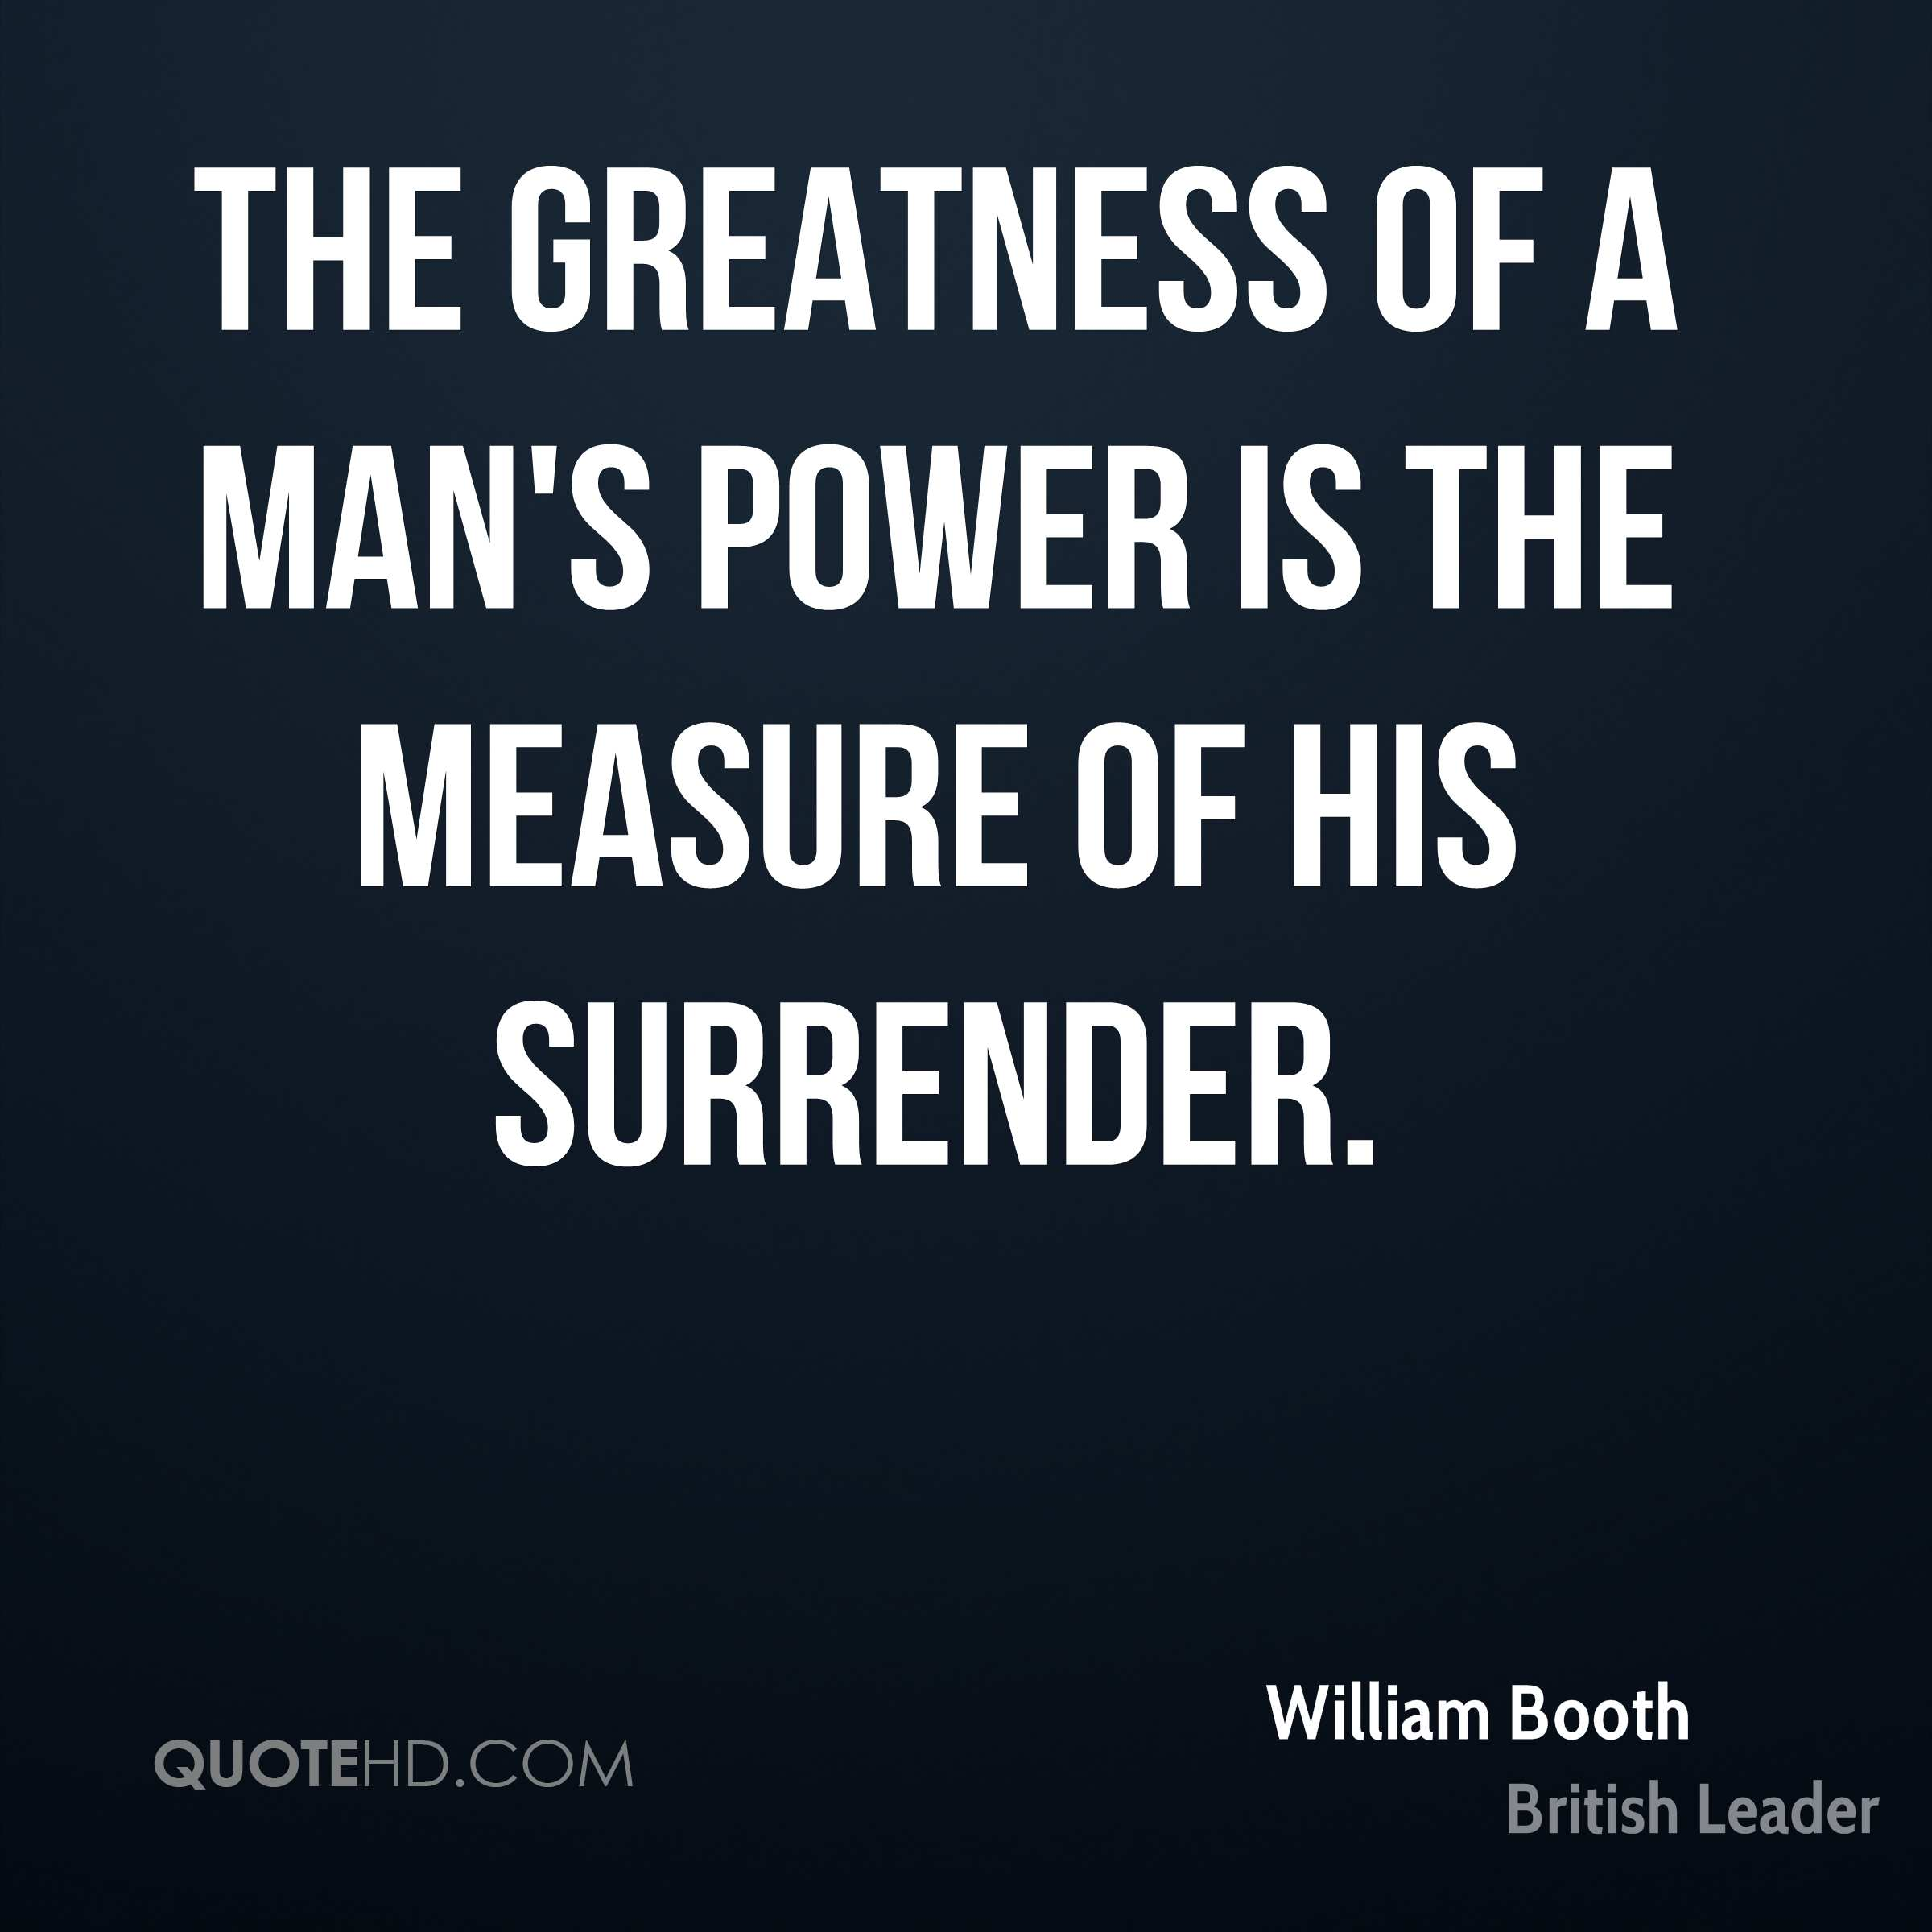 Photo Booth Quotes William Booth Quotes  Quotehd